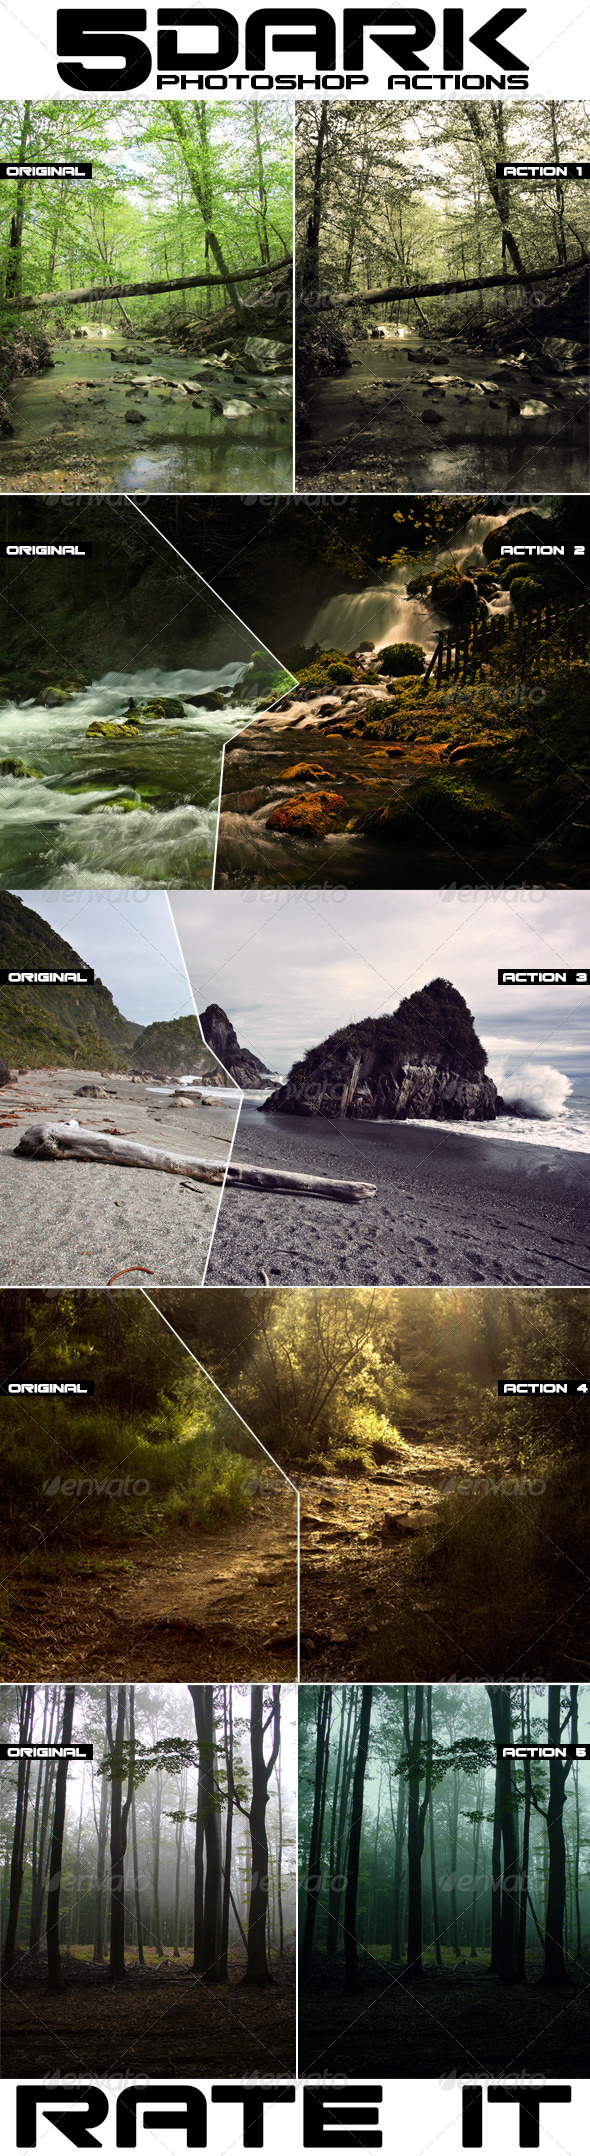 GraphicRiver Dark Photoshop Actions 8112373